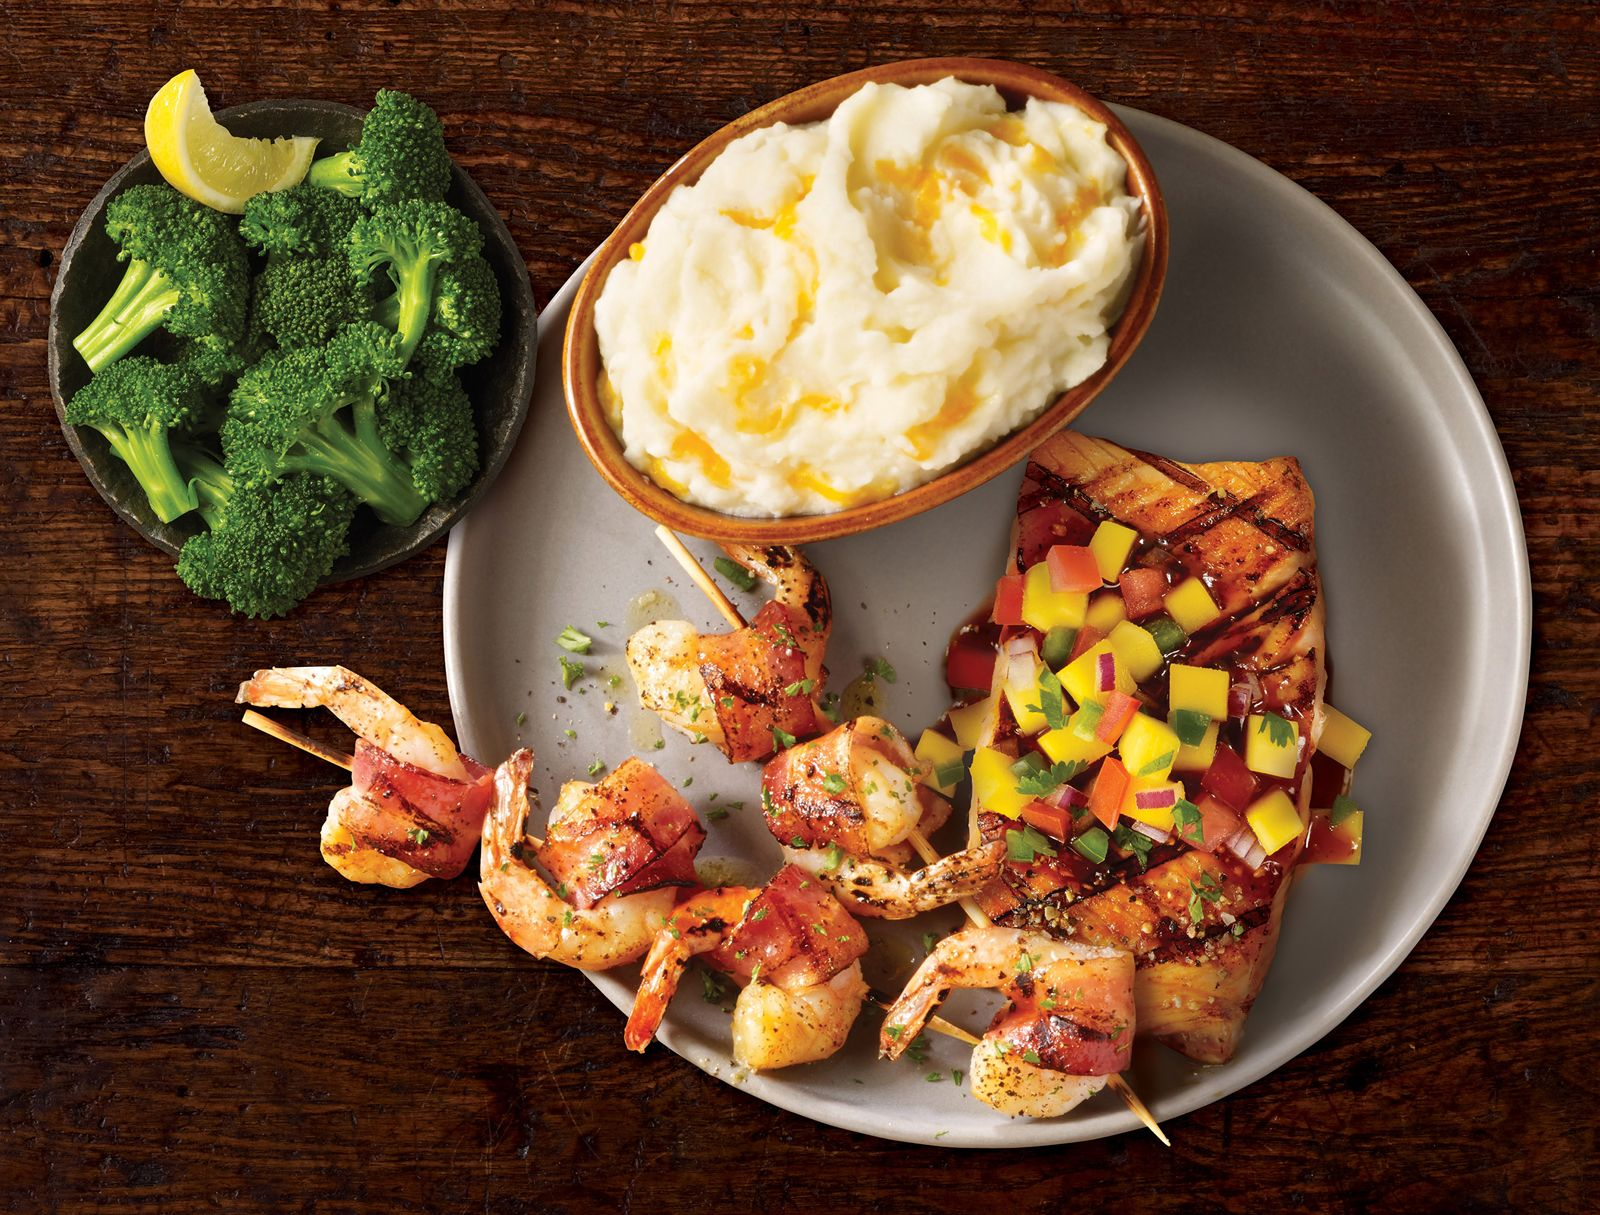 TGI Fridays Brings the Heat With New Fire-Grilled Meats, Marks Milestone Toward Complete Menu Overhaul by End of 2018